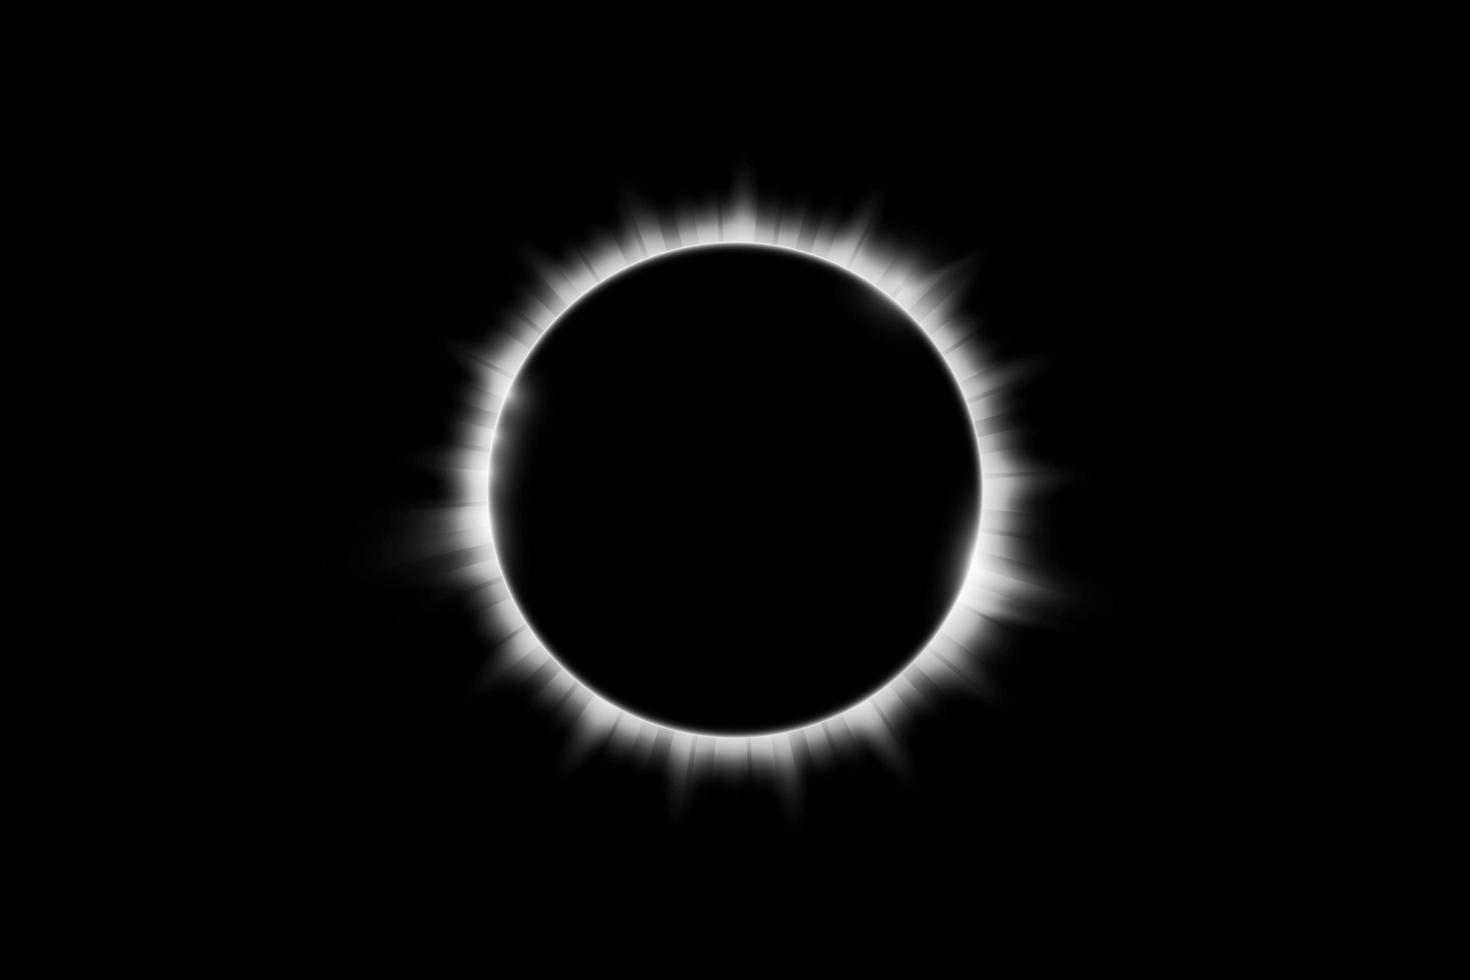 Total solar eclipse design vector